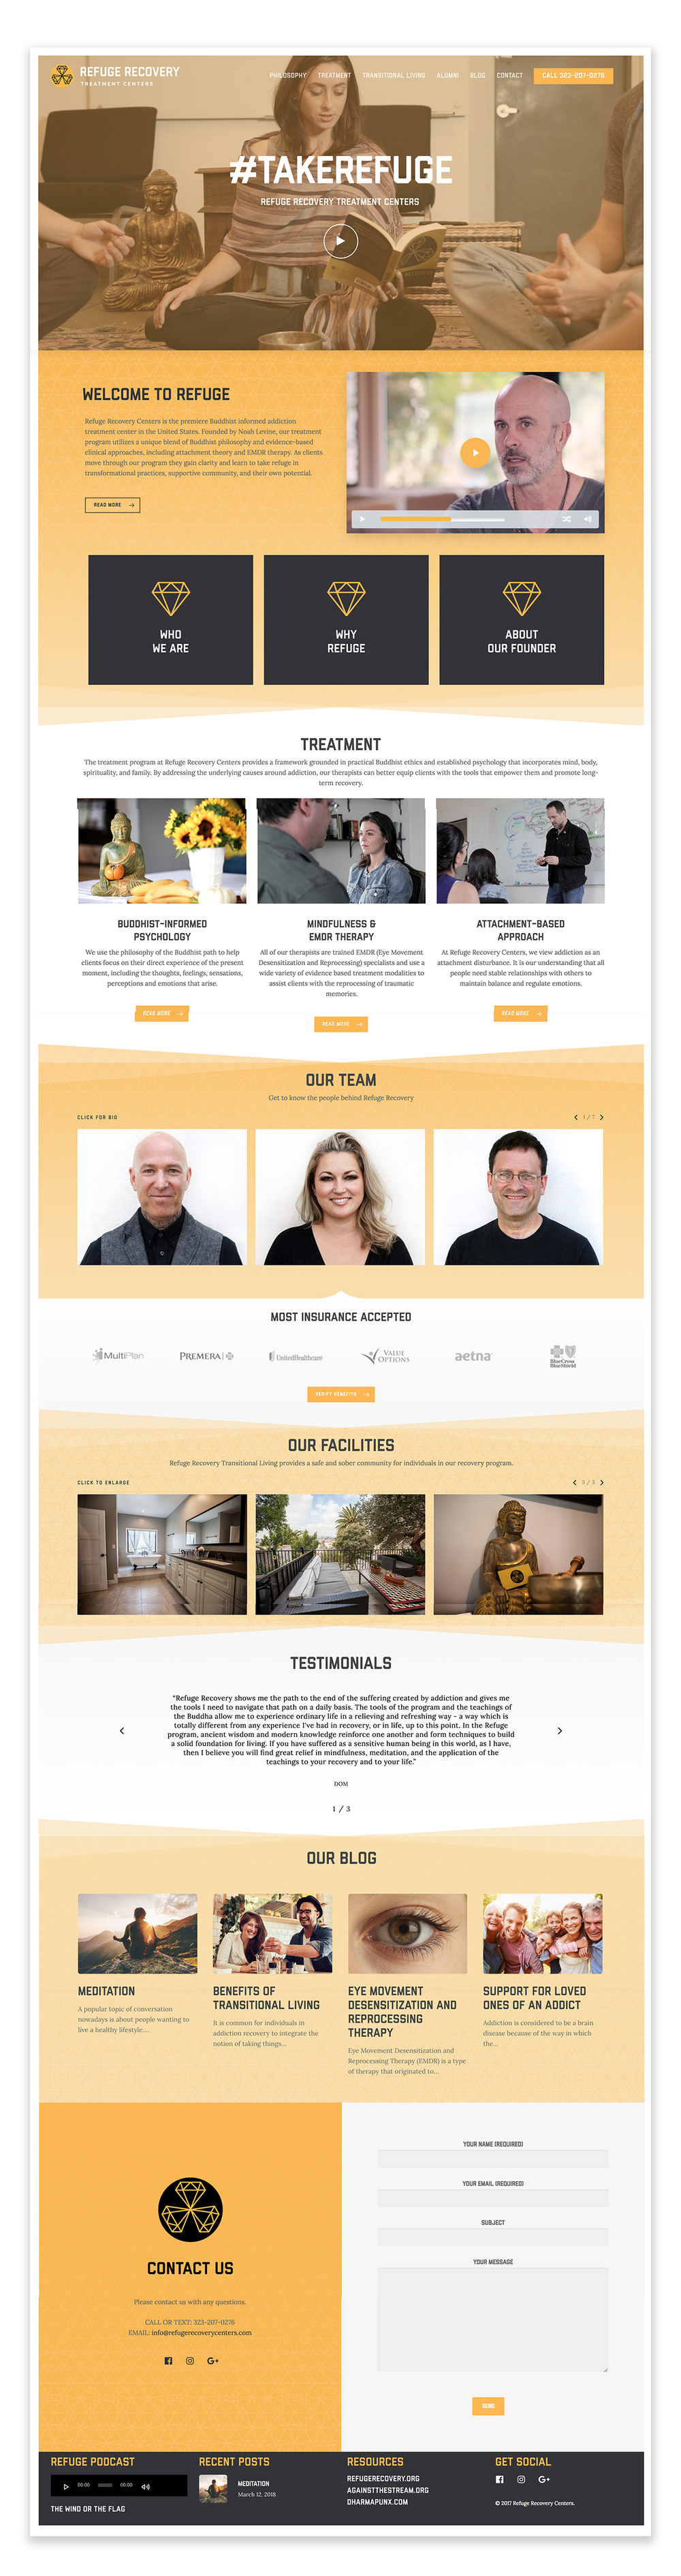 Refuge Recovery Treatment Centers - Landing Page (Web Development by Palms BLVD)